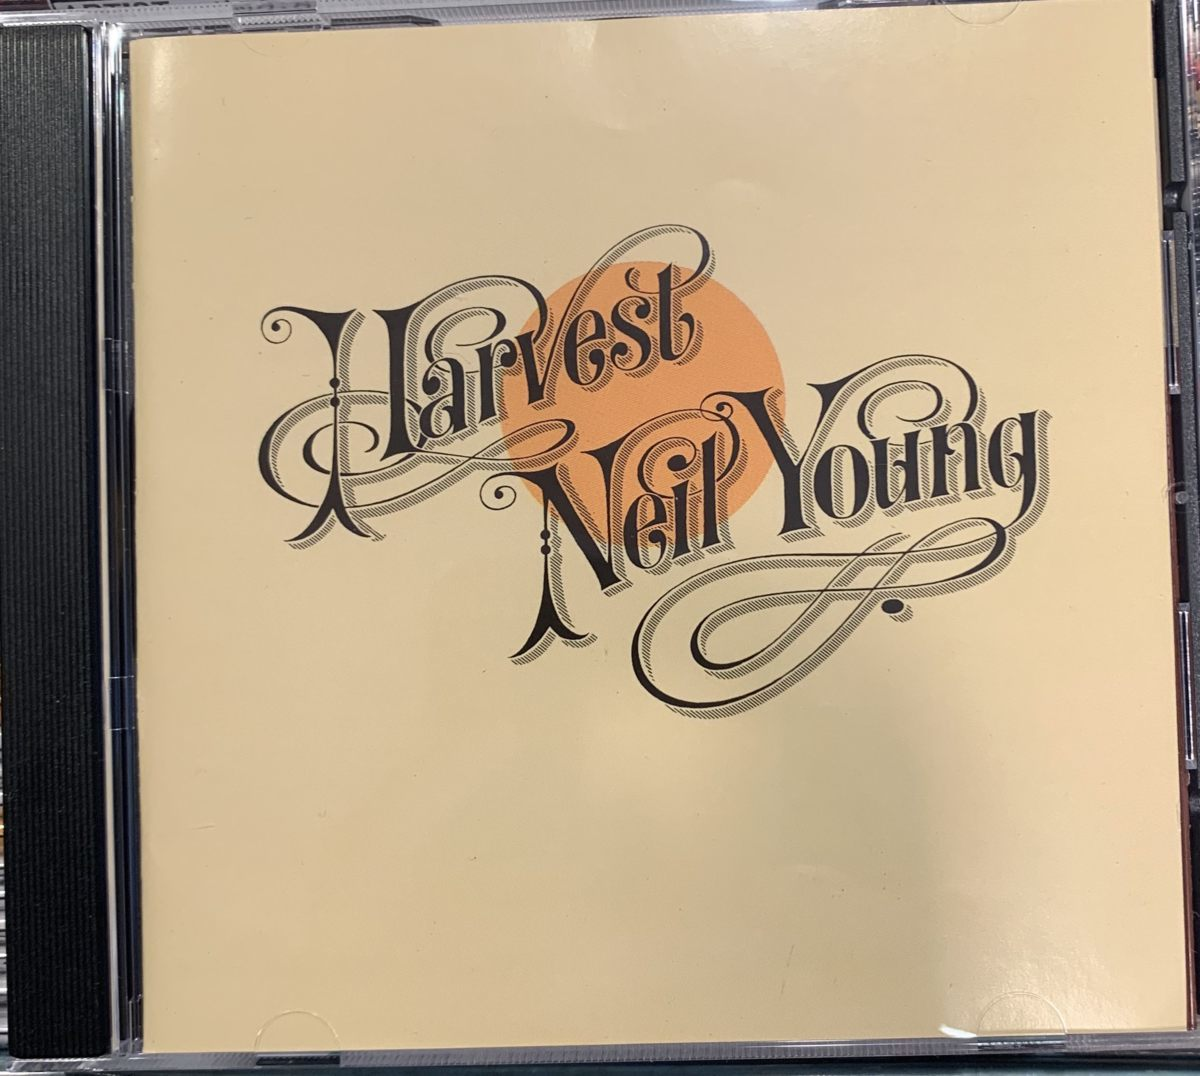 【CD】 Neil Young /Harvest インポート_画像1